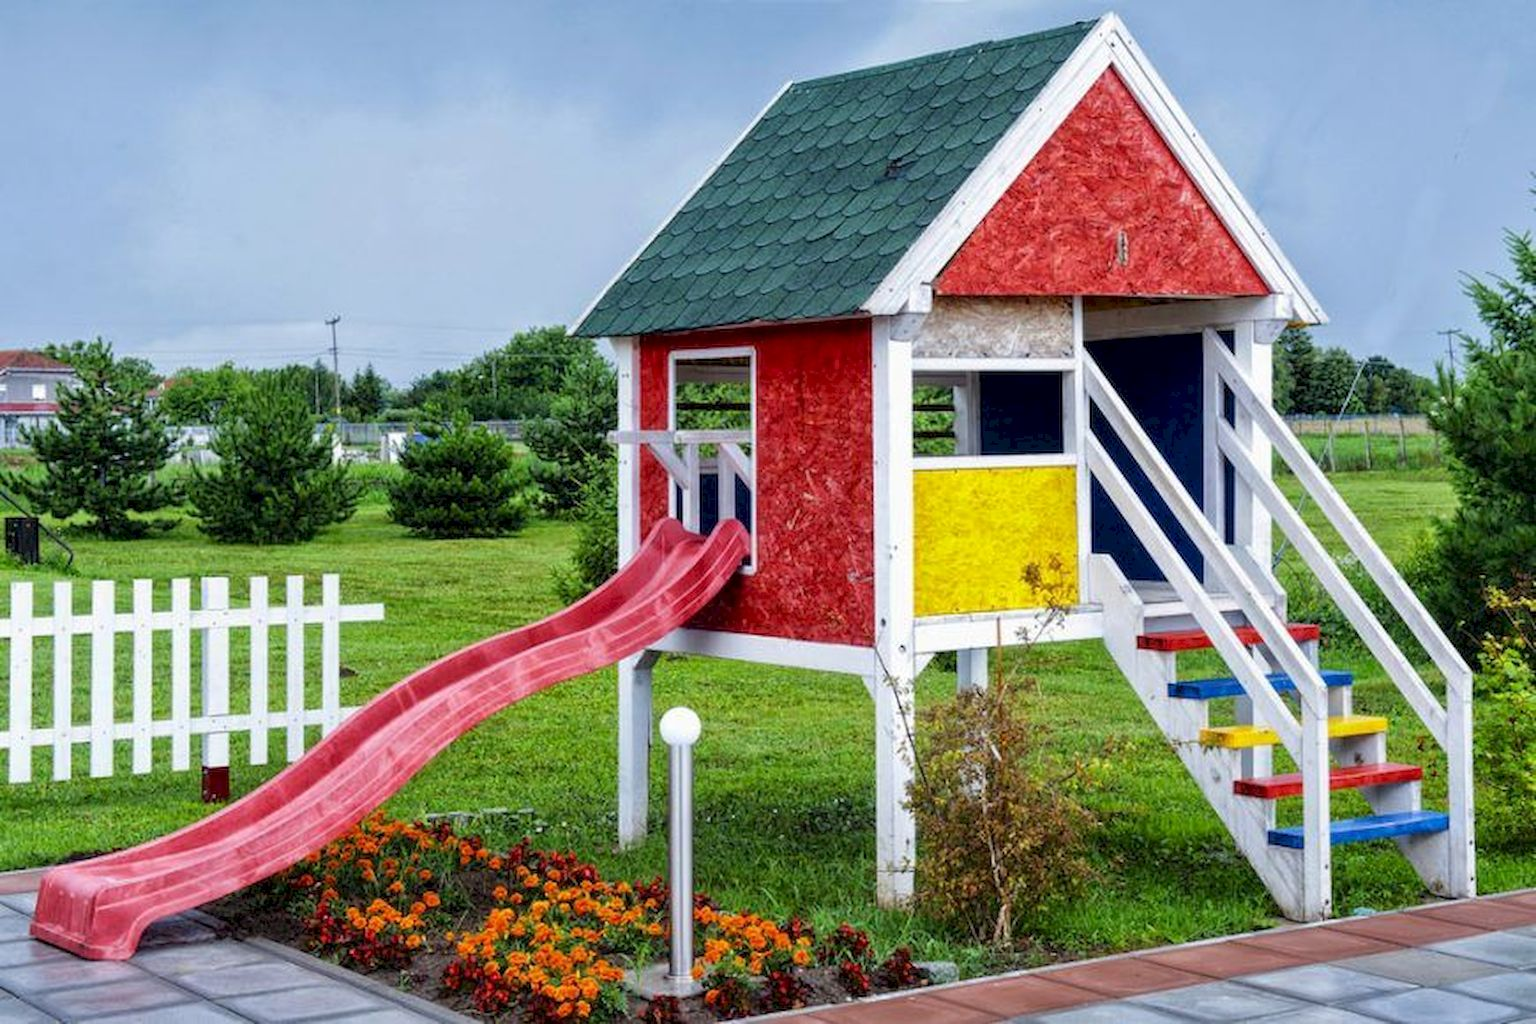 Exquisite Playhouse Plan Into Your Existing Backyard Space